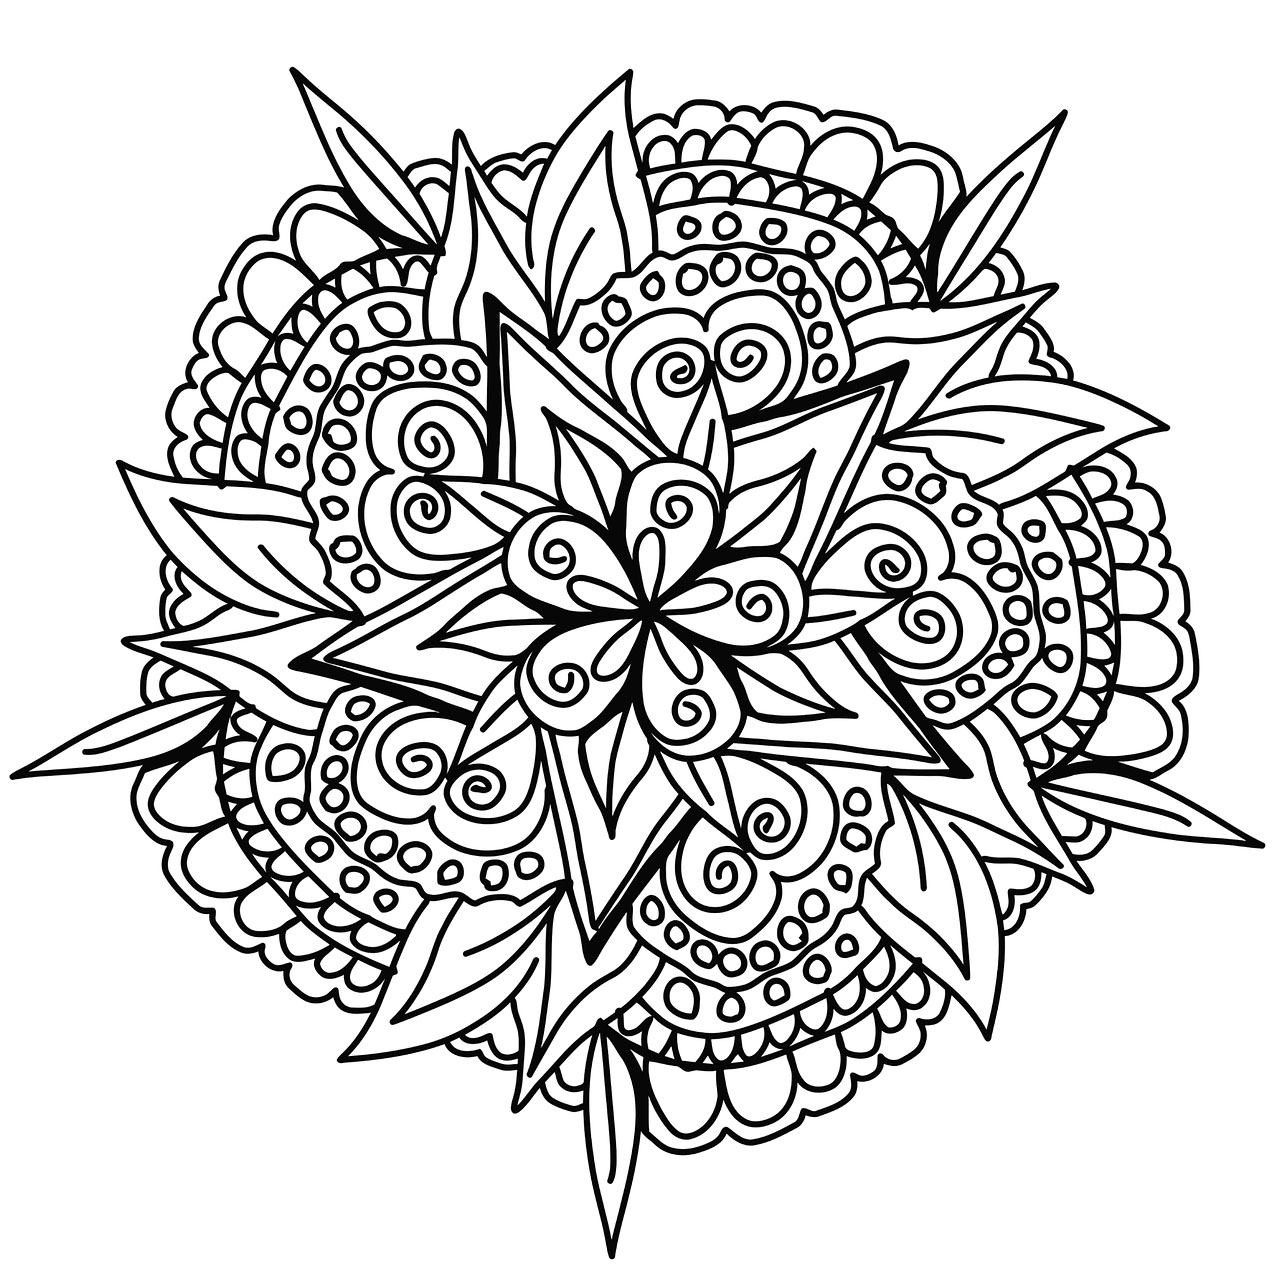 The vegetal elements often marry very well with the Mandalas, like with this coloring page of a great originality.